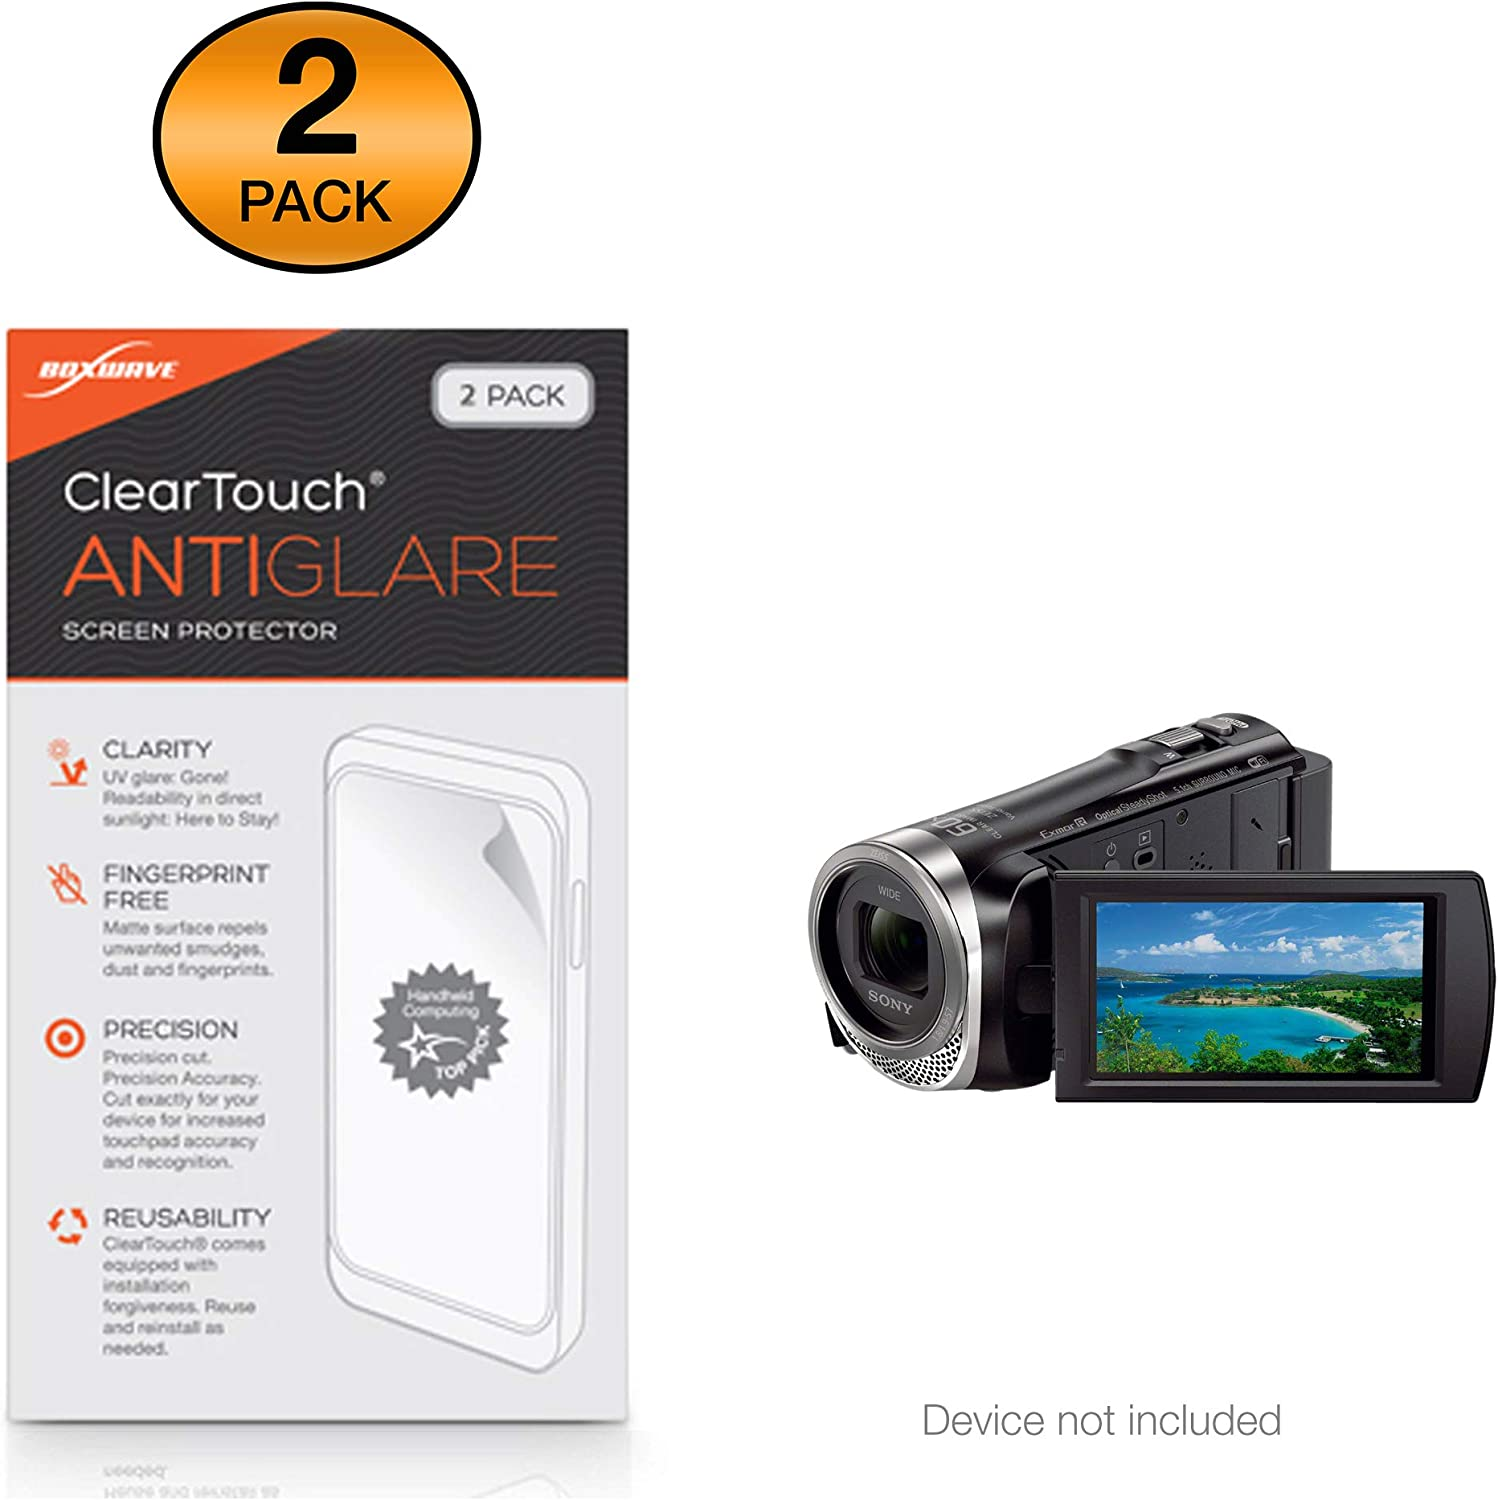 HD Film Skin Sony HDR-CX455 Screen Protector 2-Pack Shields from Scratches for Sony HDR-CX455 BoxWave/® ClearTouch Crystal